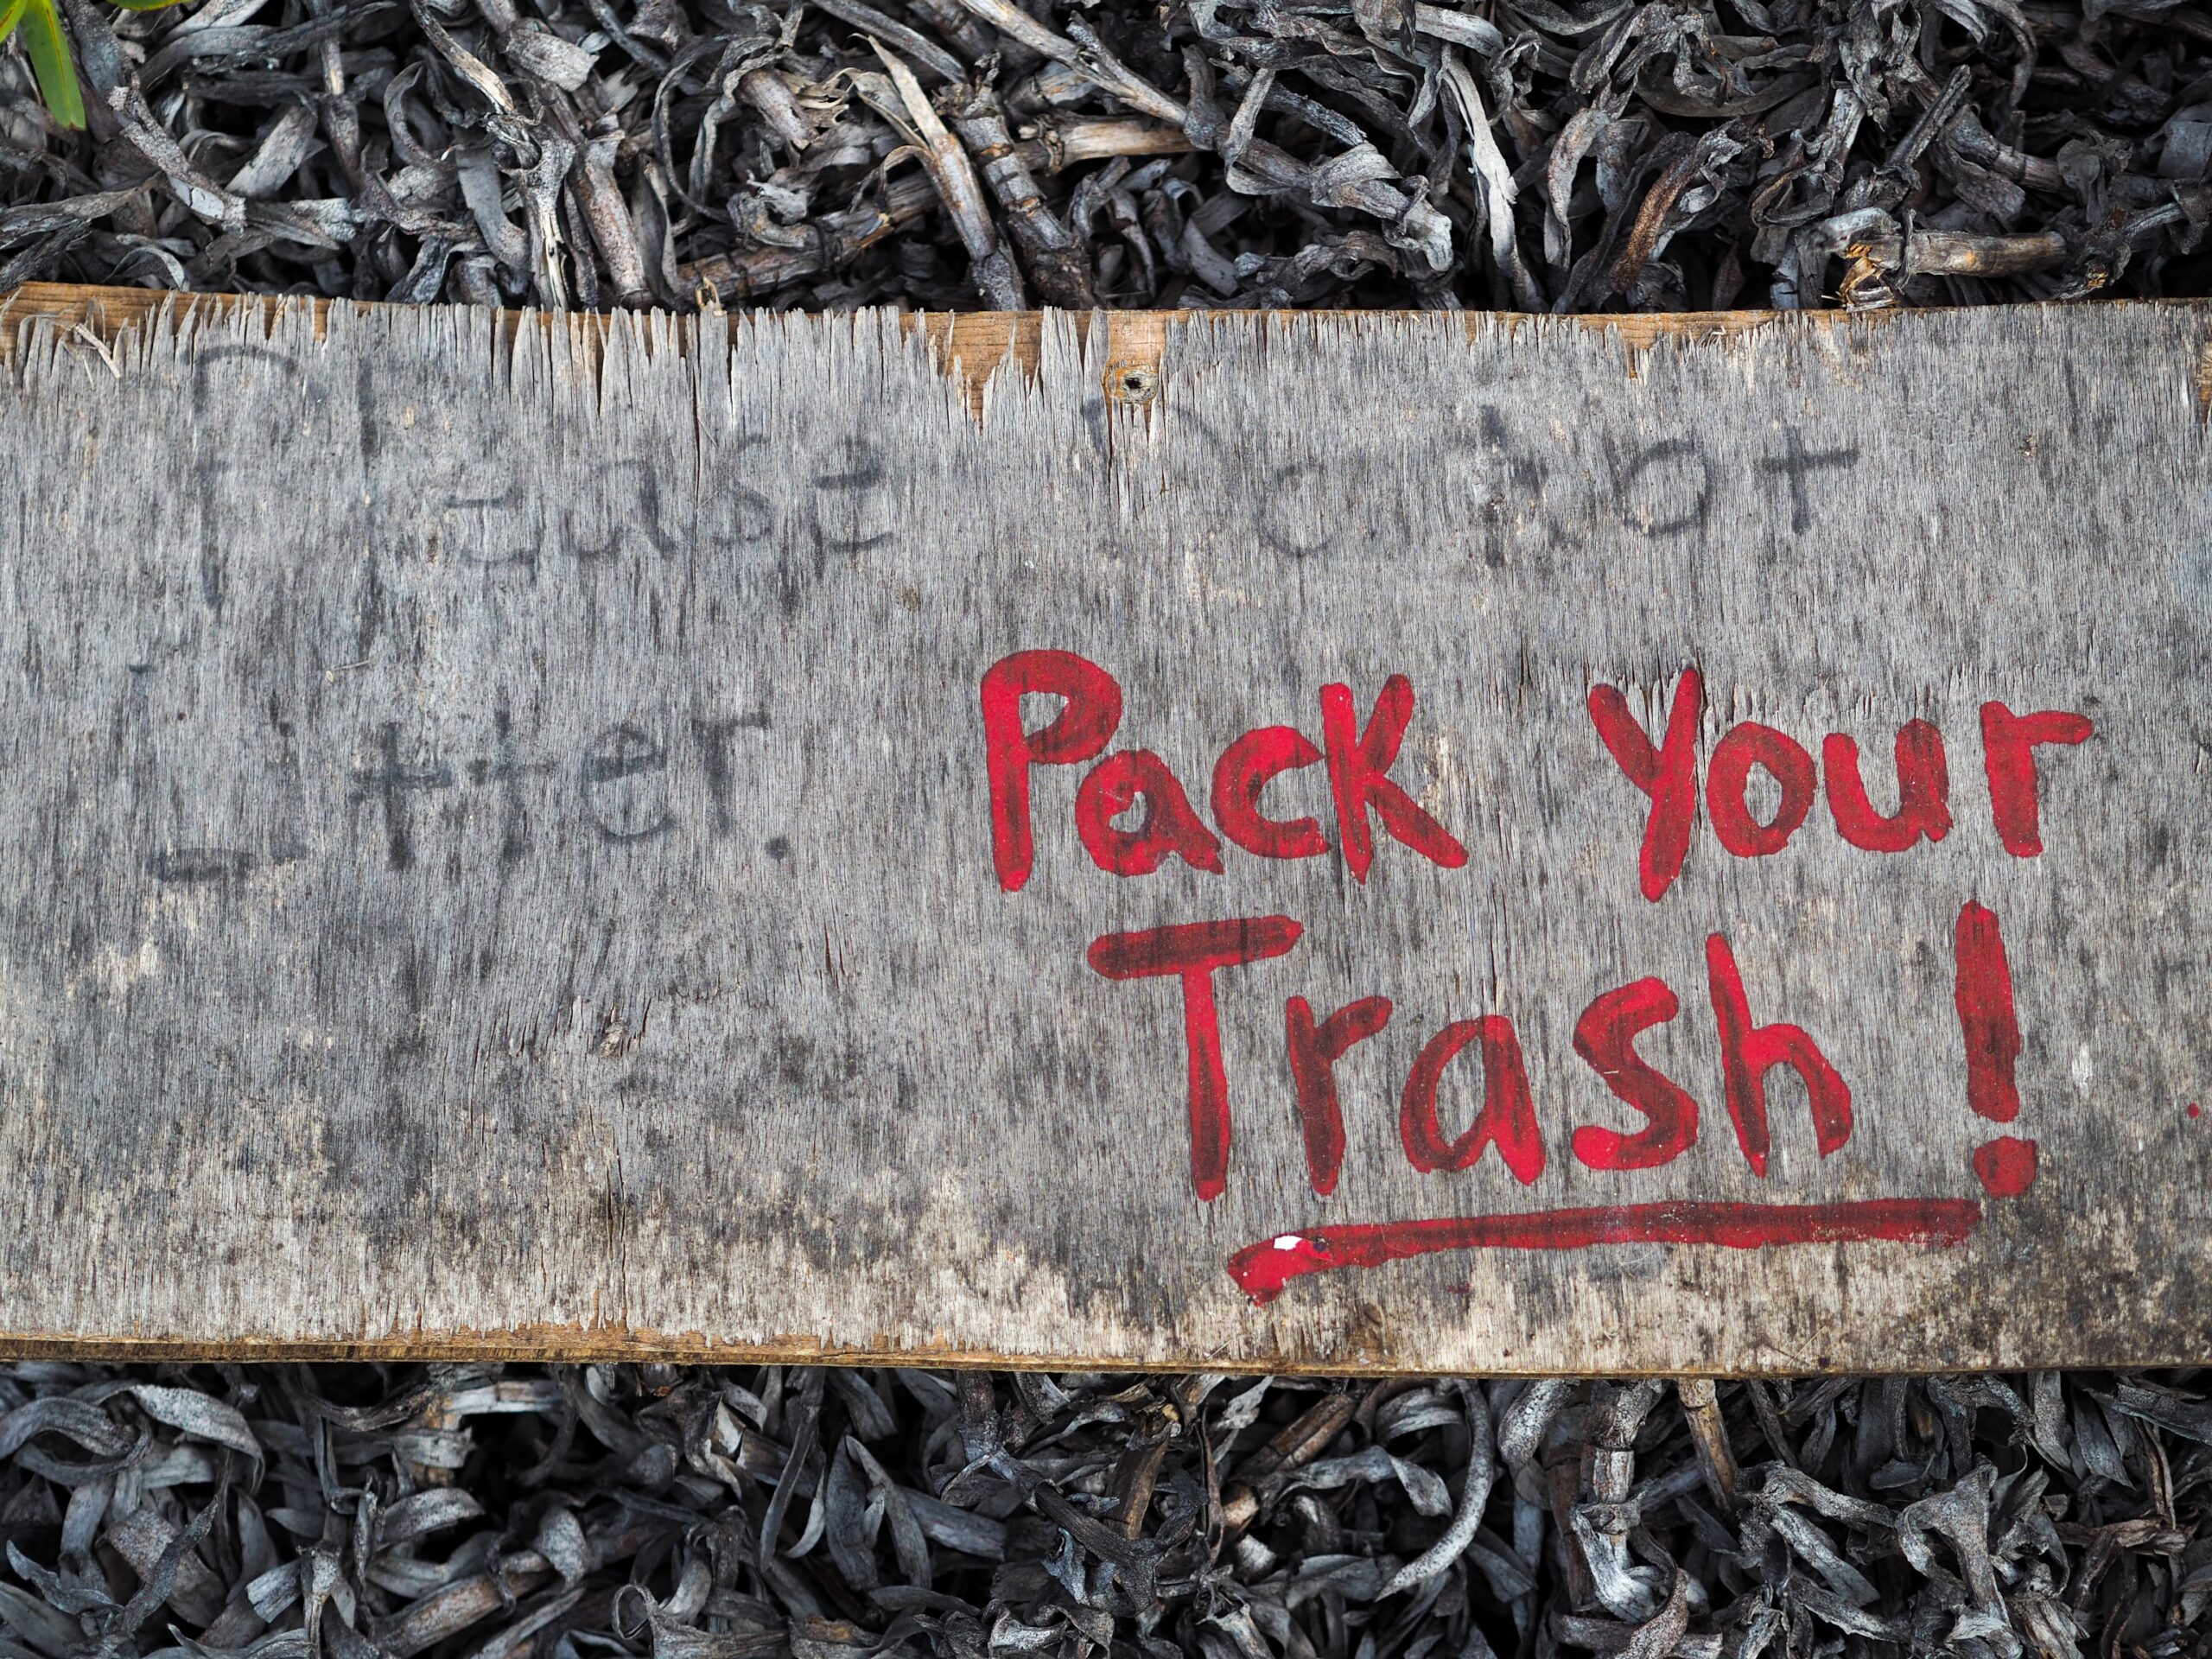 """Pack Your Trash"" is written in red on a piece of wood."